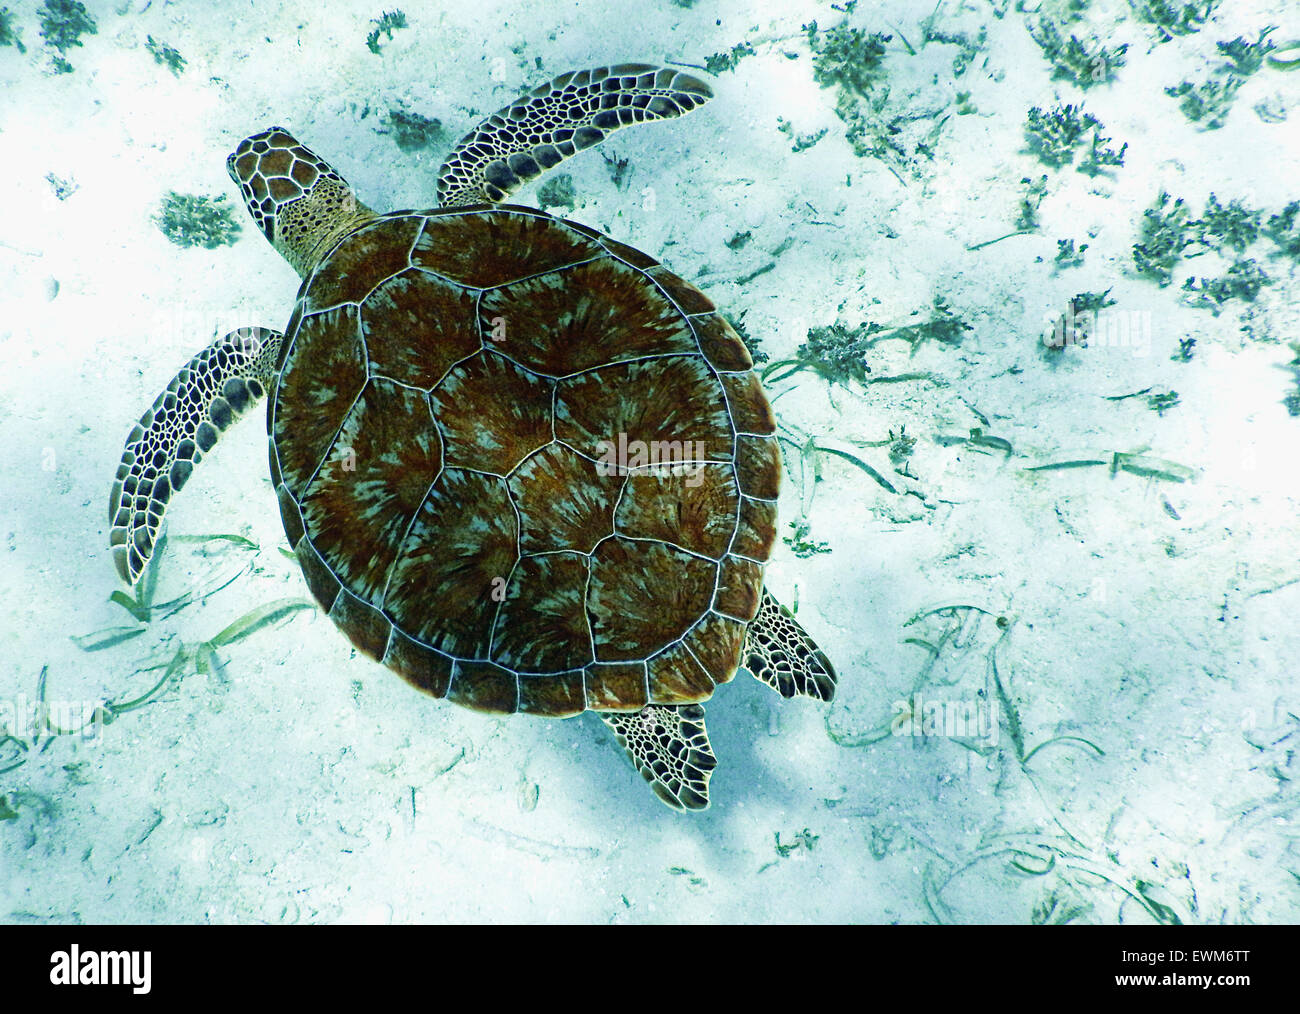 A sea turtle swimming in the waters of Belize. - Stock Image